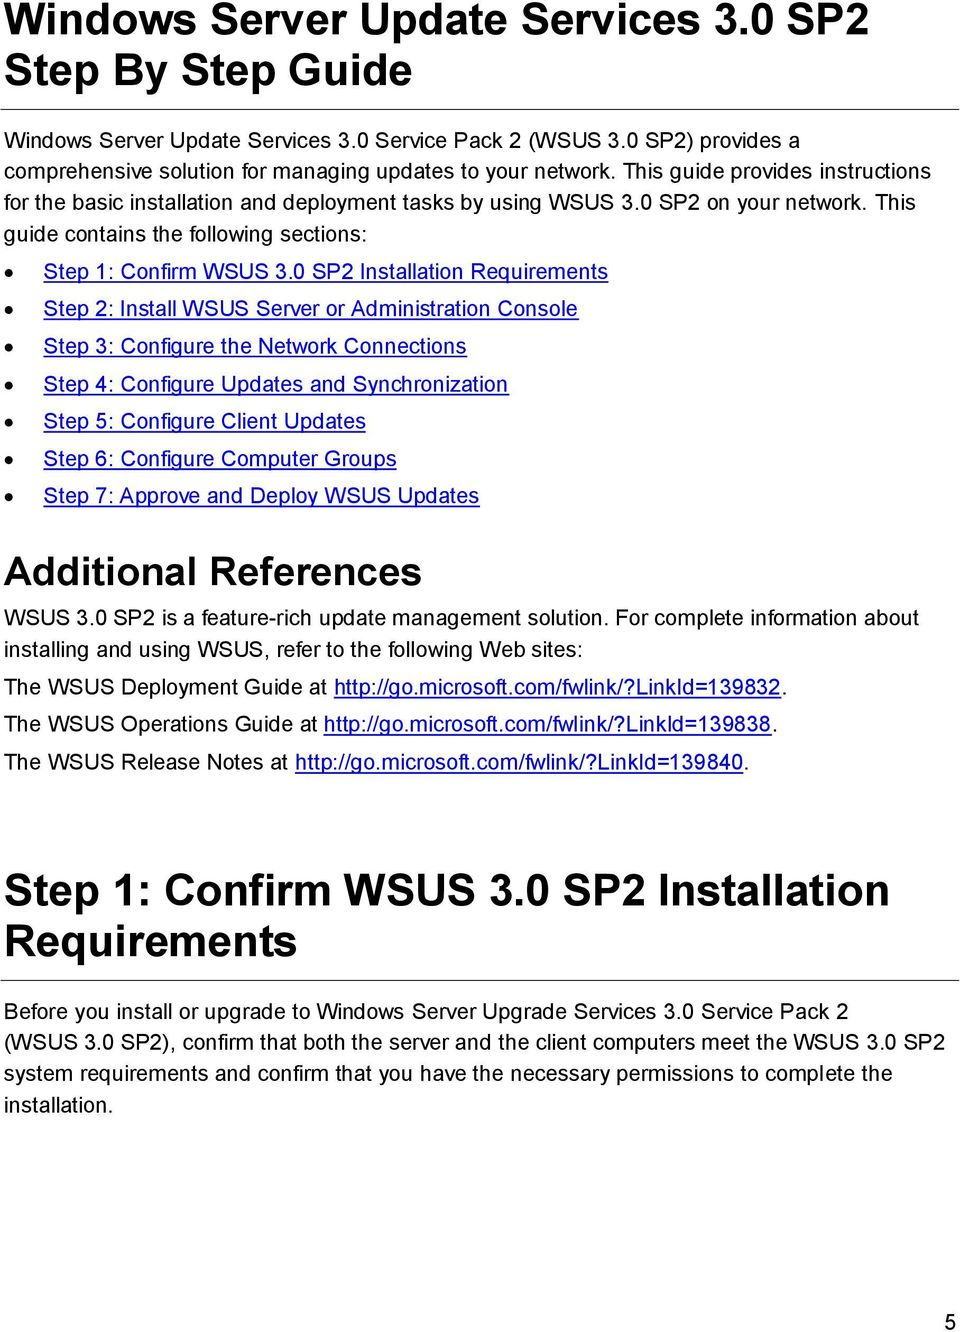 0 SP2 Installation Requirements Step 2: Install WSUS Server or Administration Console Step 3: Configure the Network Connections Step 4: Configure Updates and Synchronization Step 5: Configure Client